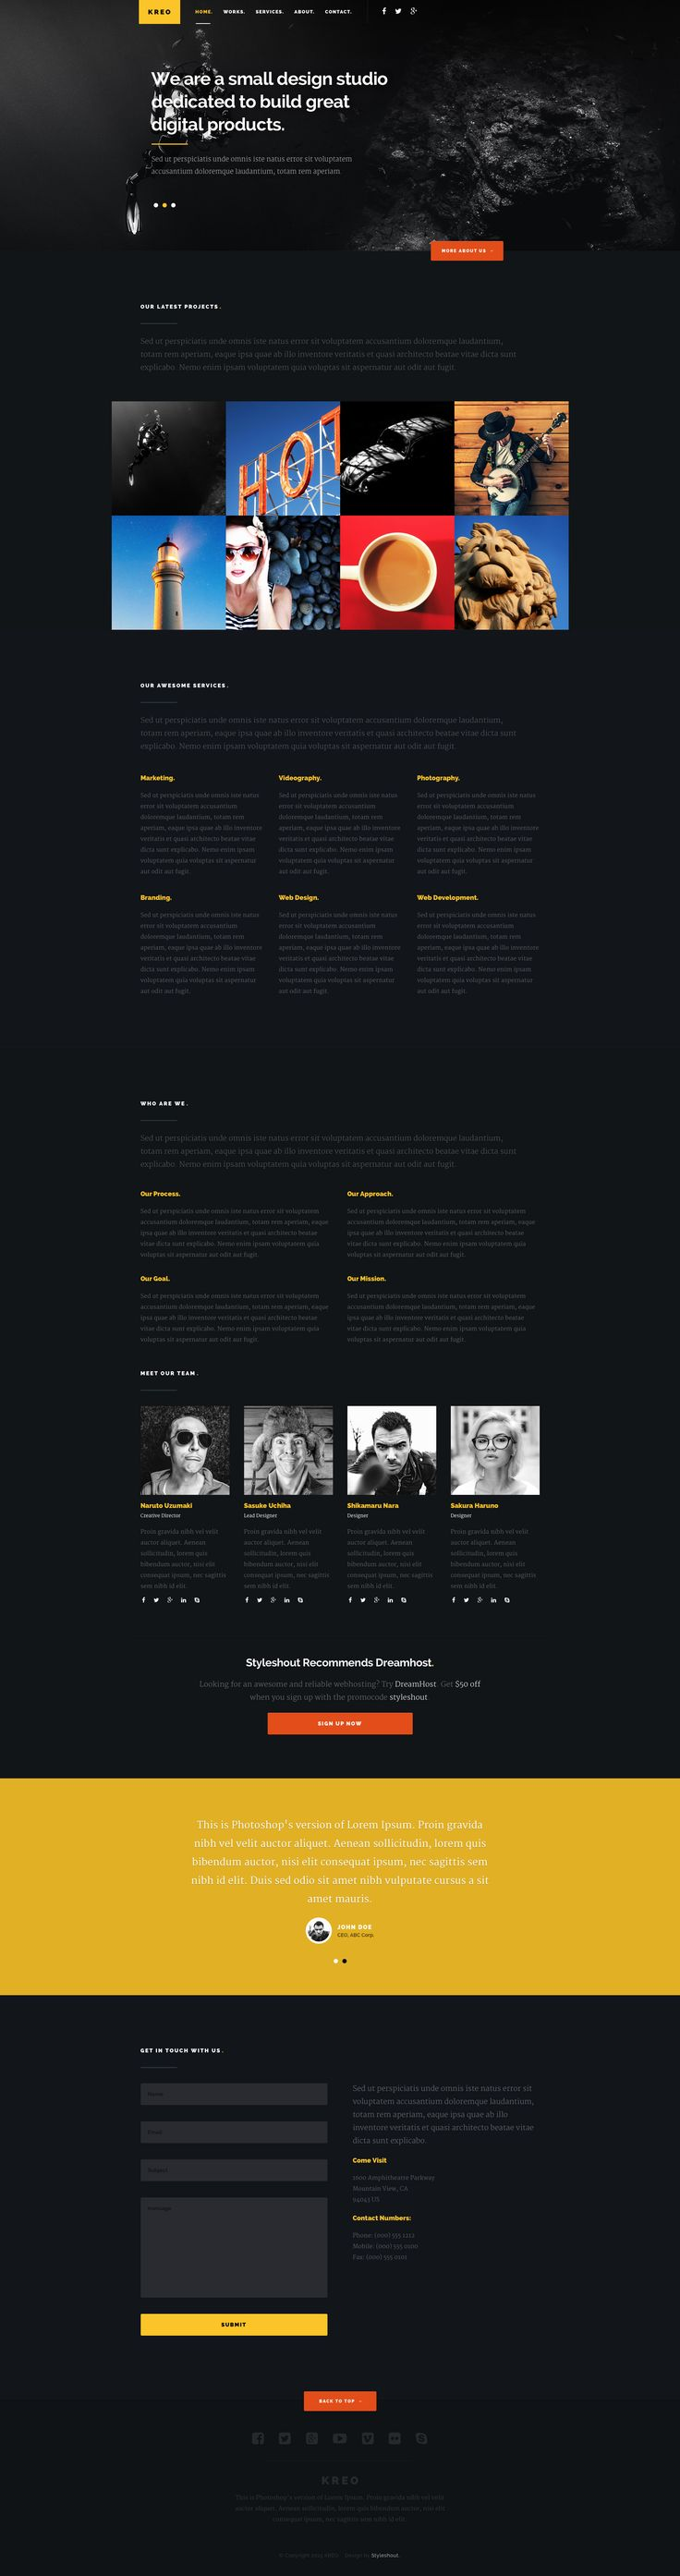 Kreo is a free HTML5 one page business website template for creative professionals, agencies or freelancers. It can also be used for small business websites. Kreo template features a modern and bold design, css animations, retina-ready design and working ajax form.